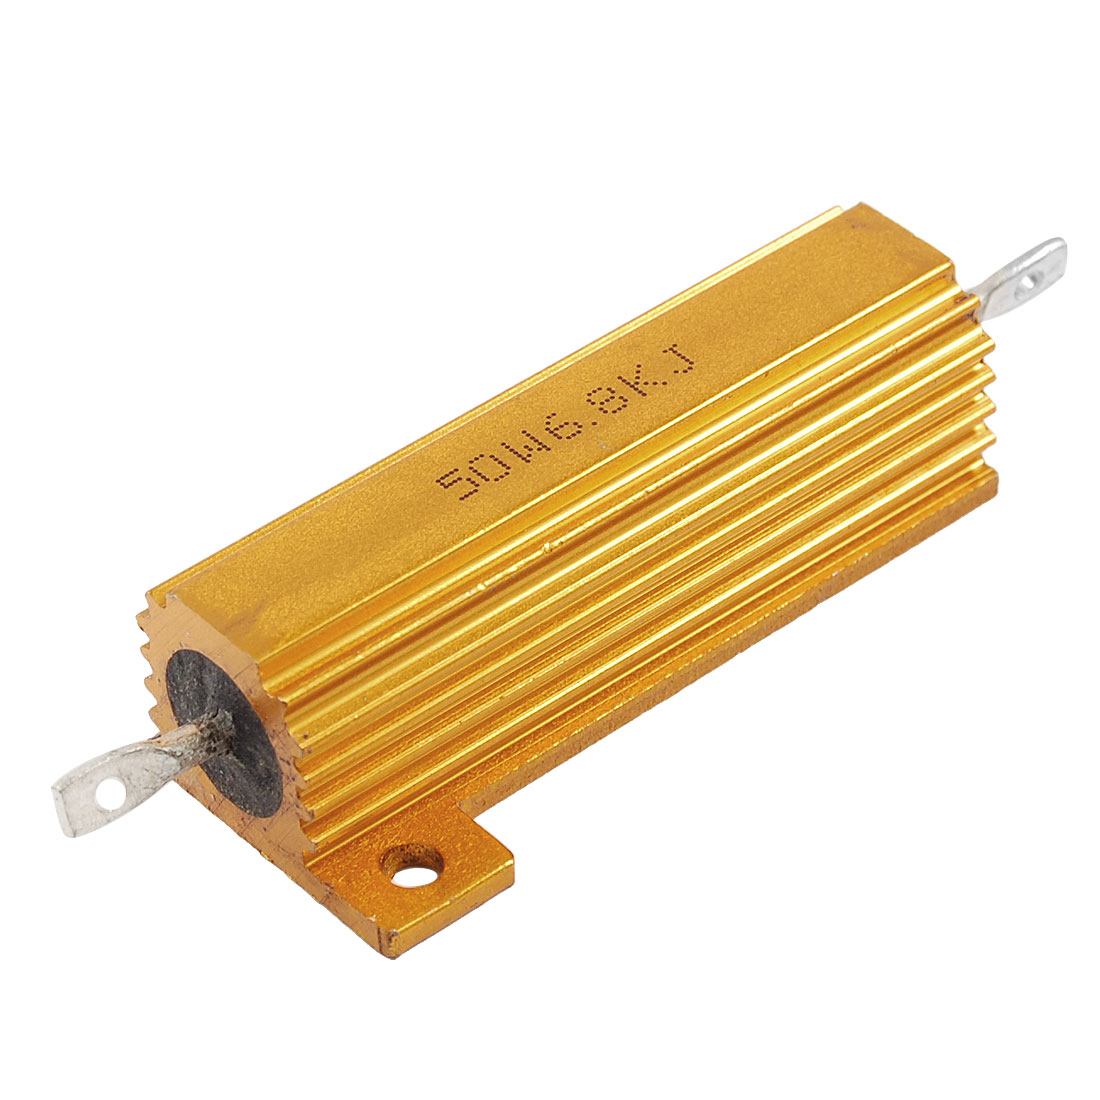 50W 6.8K Ohm Screw Tap Mounted Aluminum Housed Wirewound Resistor